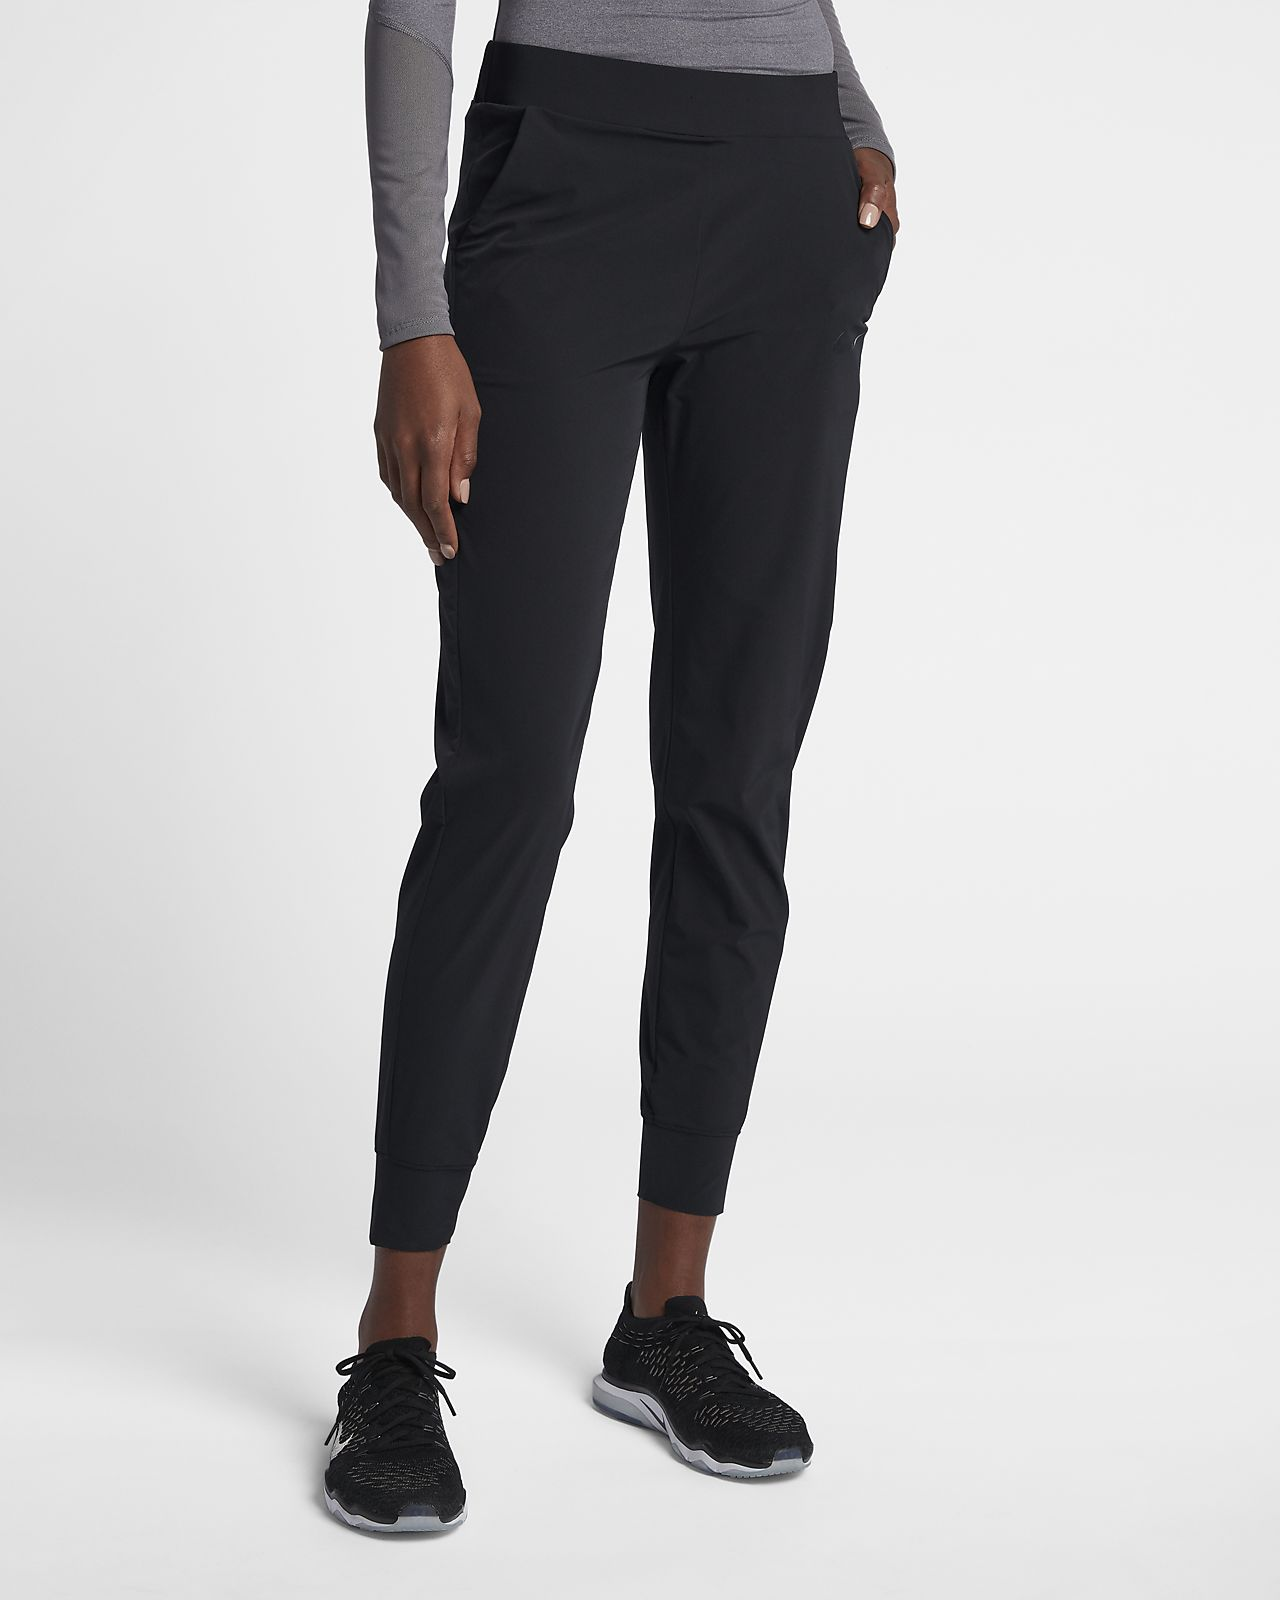 ce76797767 Nike Bliss Lux Women s Mid-Rise Training Trousers. Nike.com GB